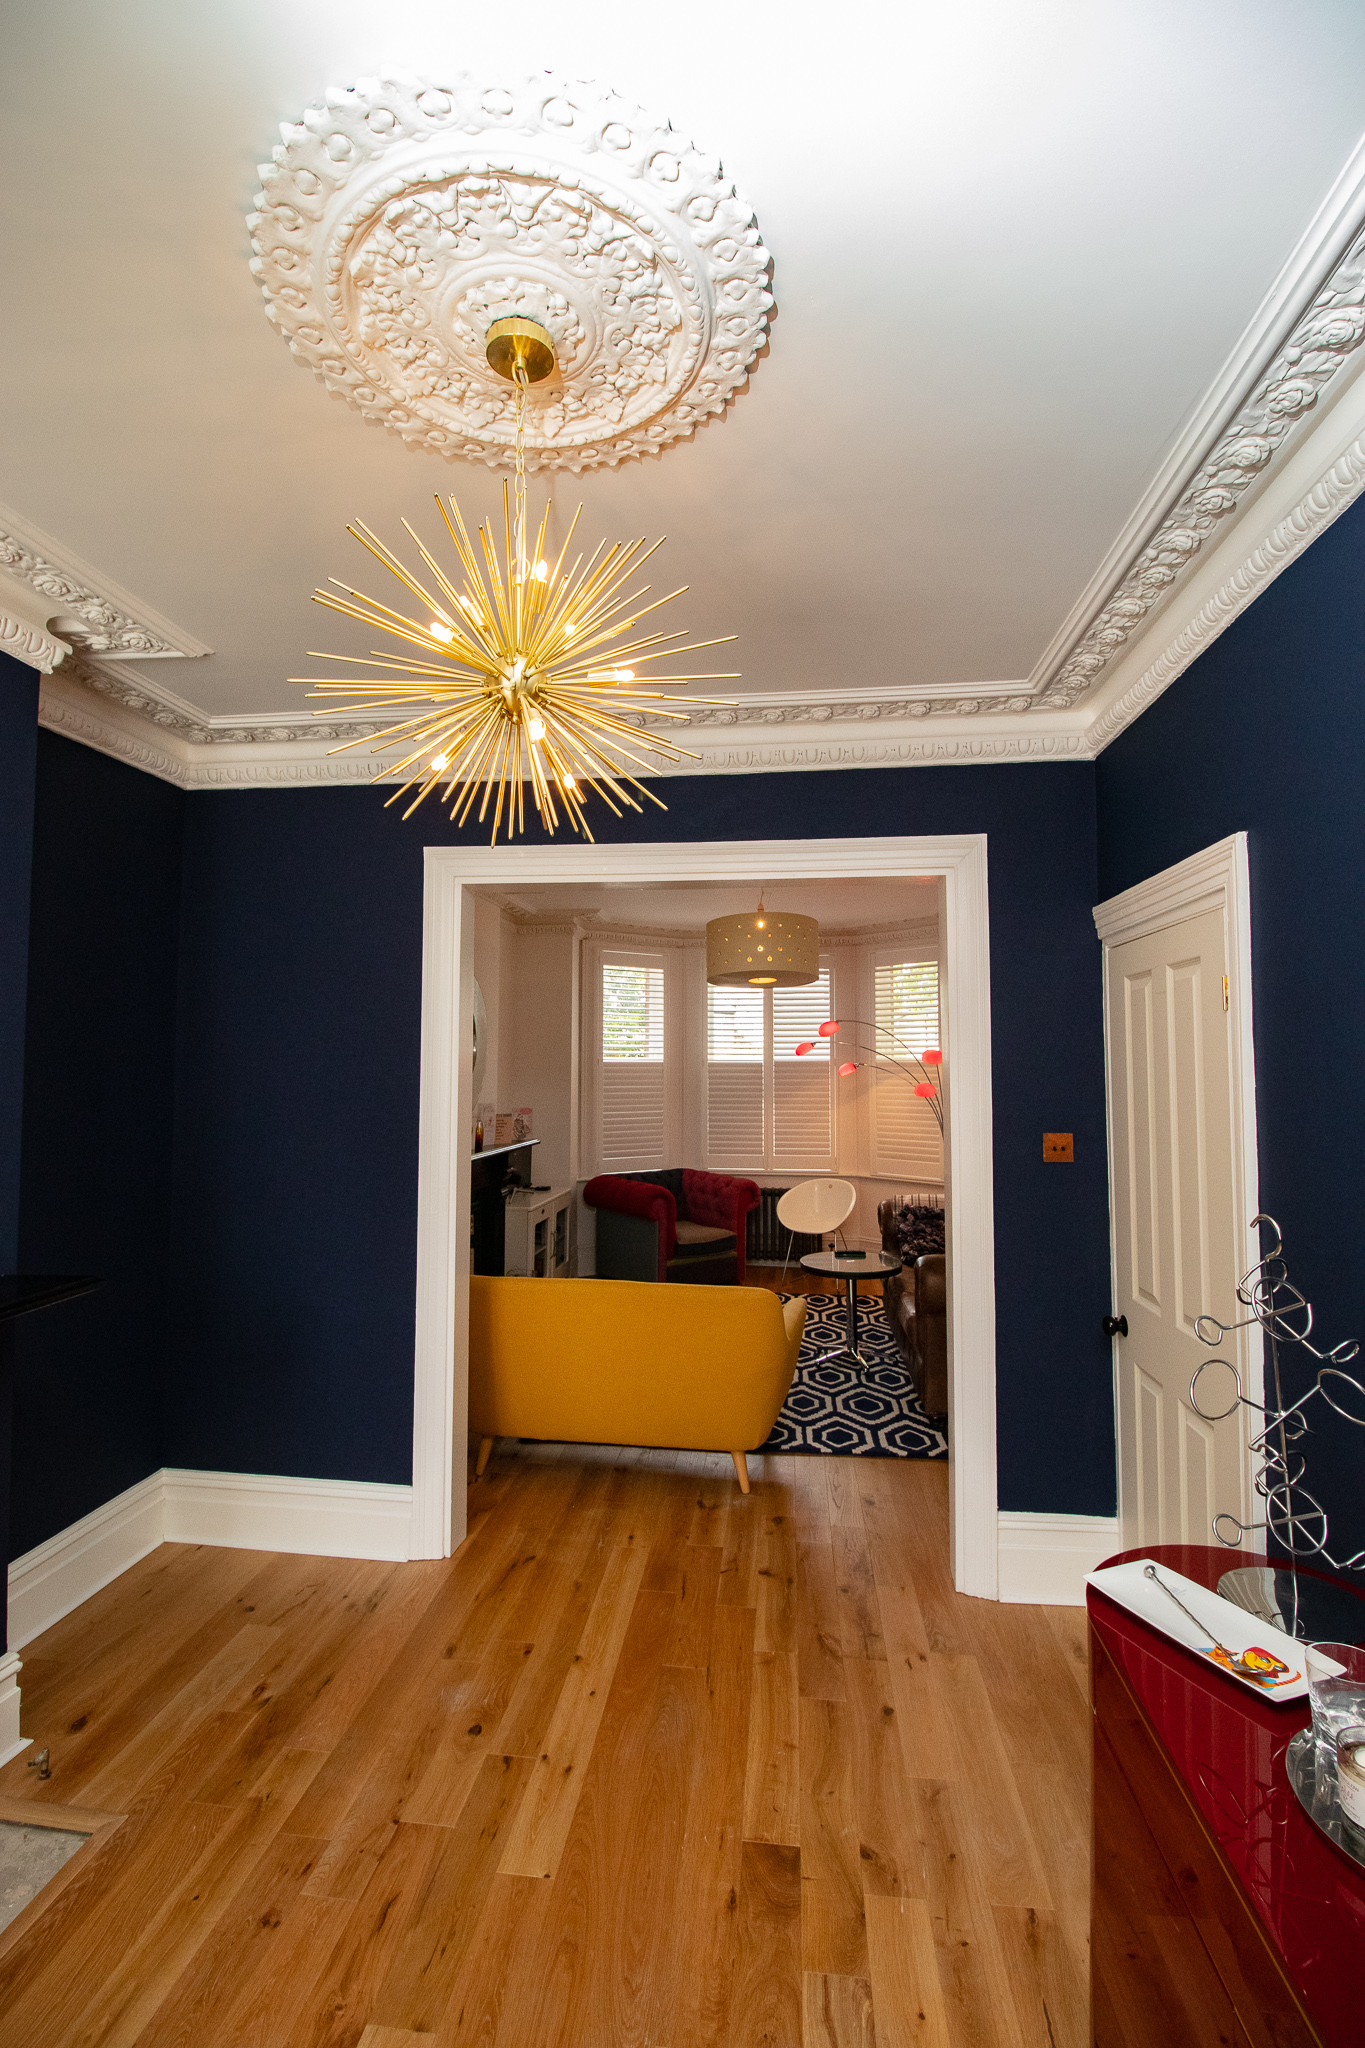 STARBURST CHANDELIER, GOLD CHANDELIER, HAGUE BLUE LIVING ROOM, STIFFKEY BLUE, BLUE ROOM.jpg